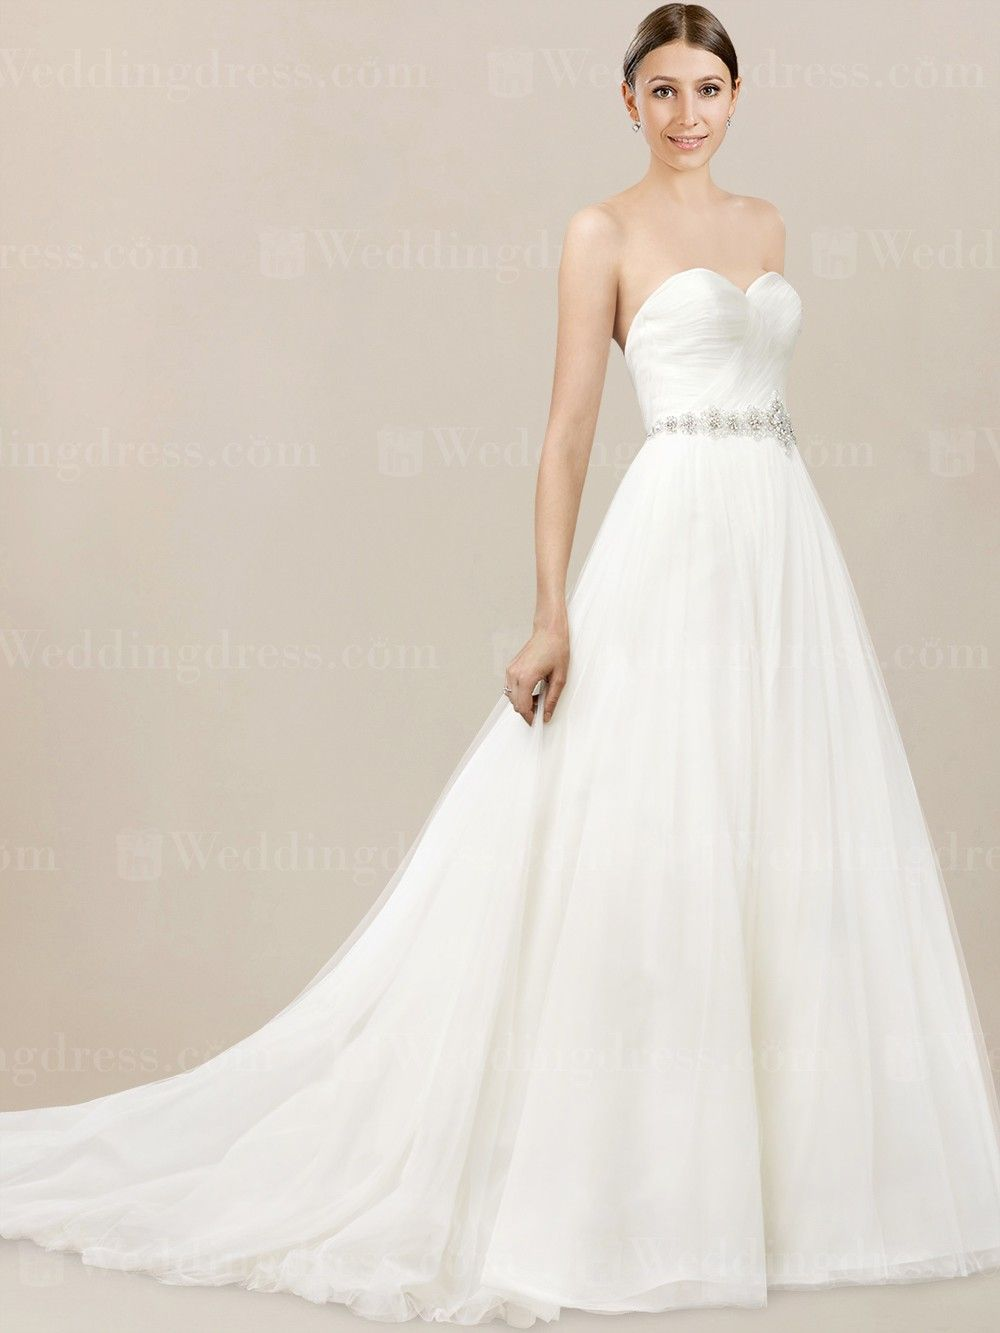 Tulle Strapless Wedding Dress Features Pleated Bodice And An Intricate Detail Of Bead Patterns On The Natural Waistline Aline Skirt Allows: Pleated Bodice Strapless Wedding Dress At Reisefeber.org